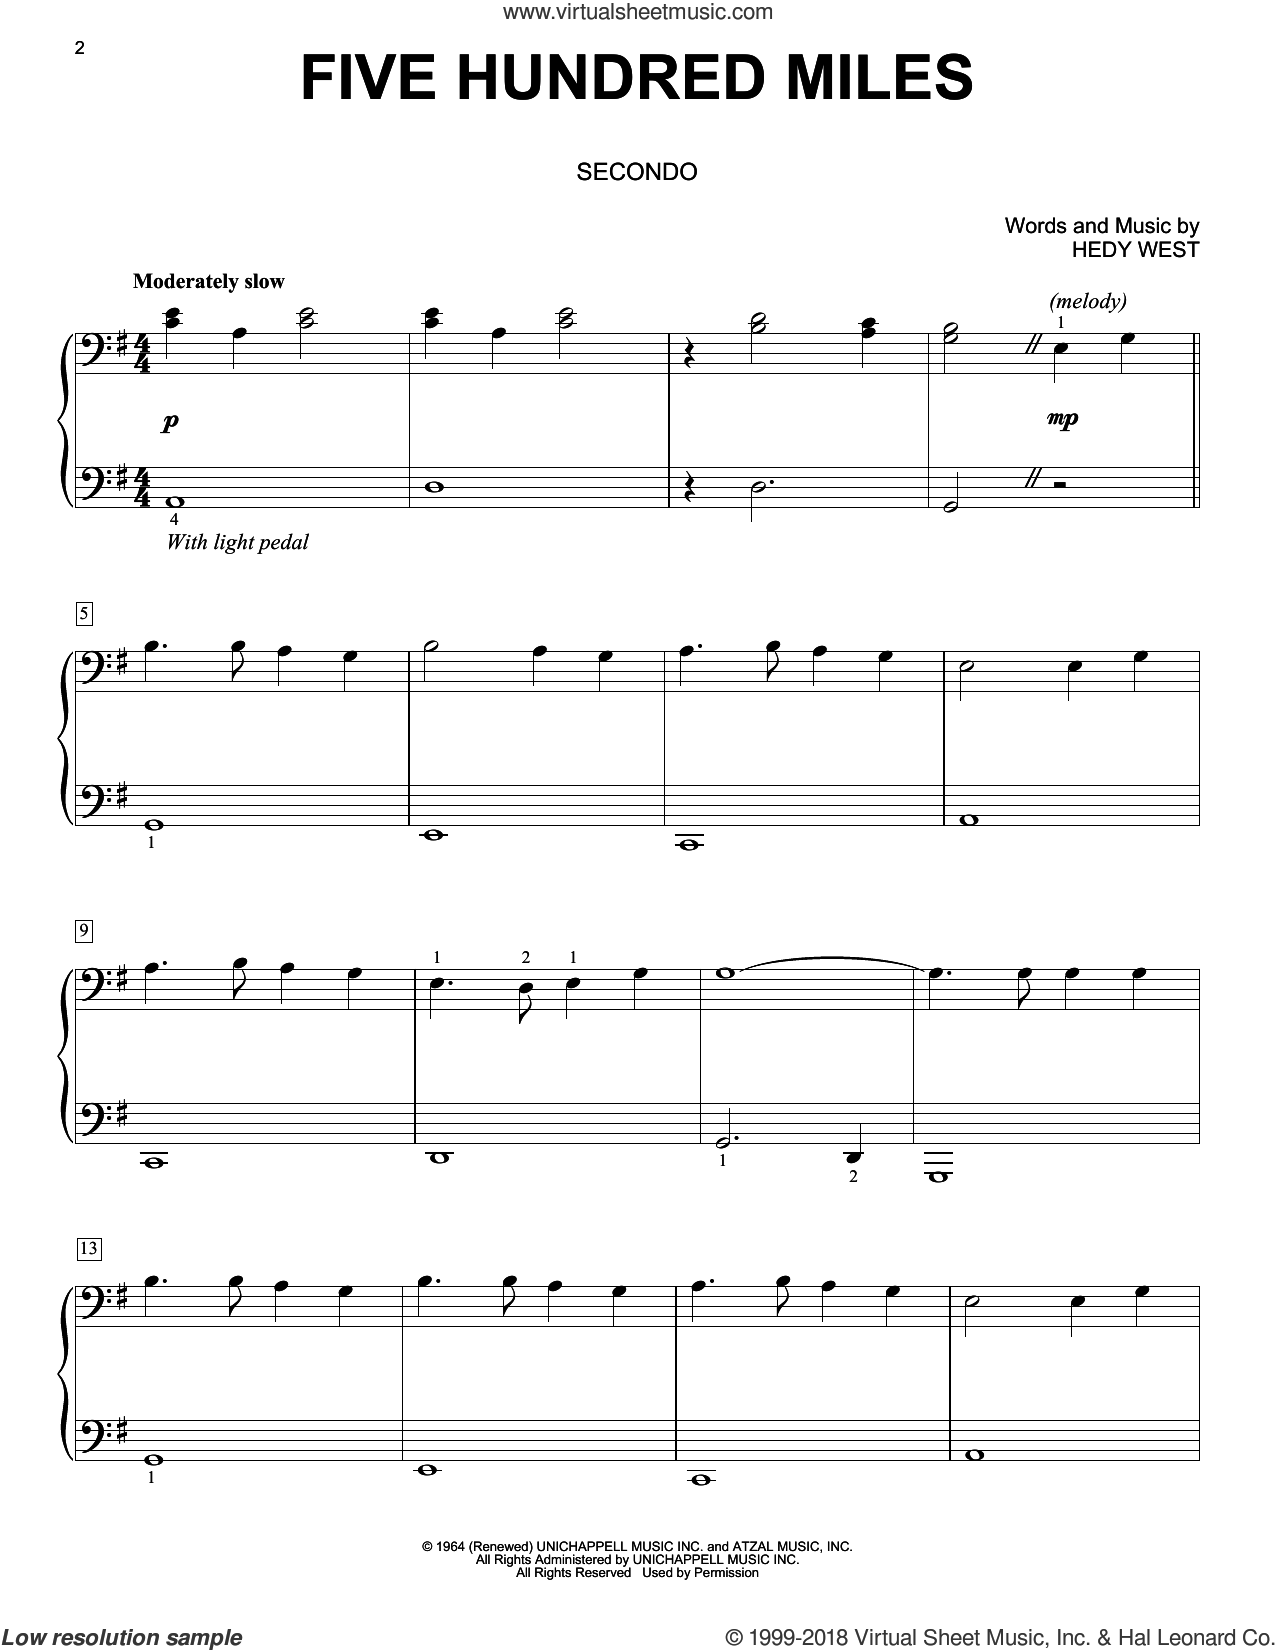 Five Hundred Miles sheet music for piano four hands by Peter, Paul & Mary and Hedy West, intermediate skill level